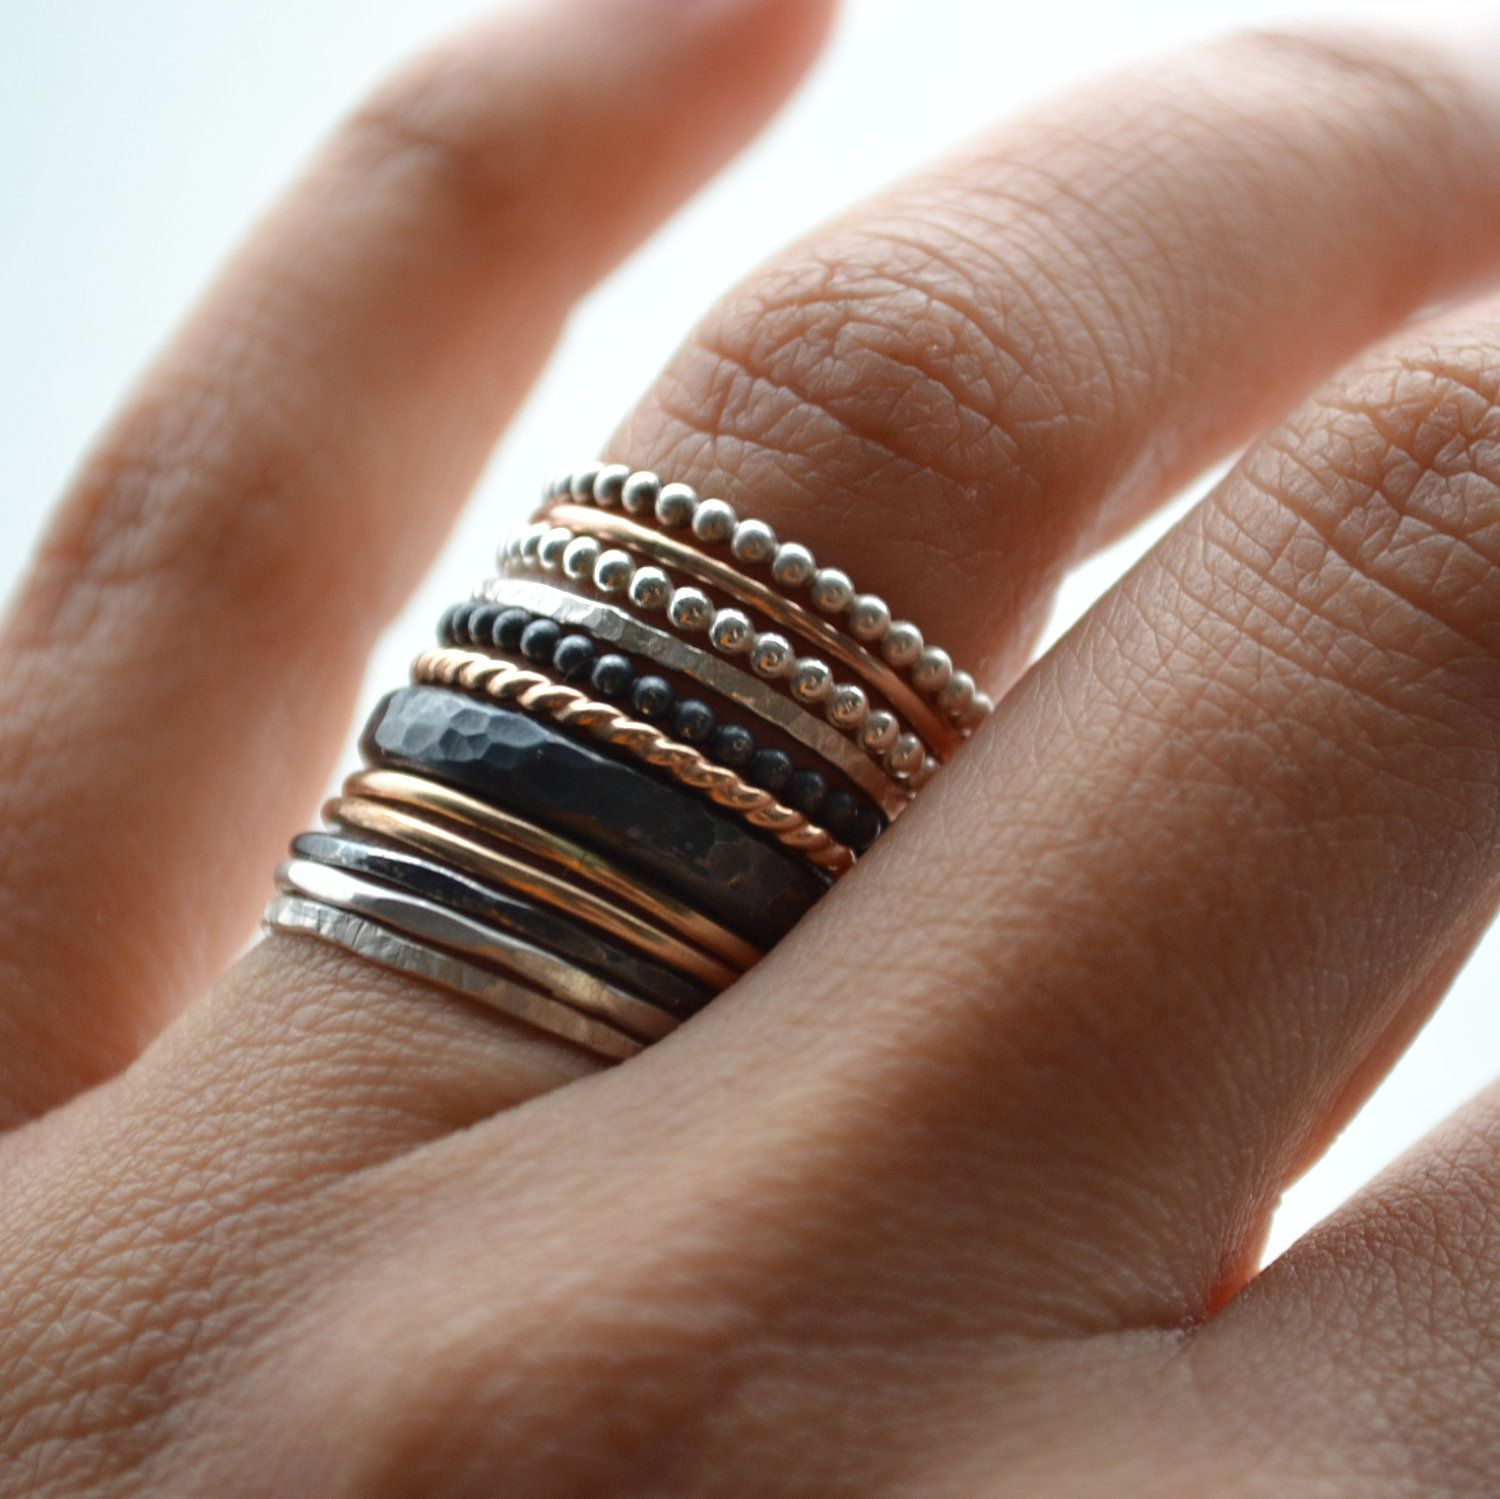 Lunaticart - 12 stacking rings, 14k gold filled and silver bands